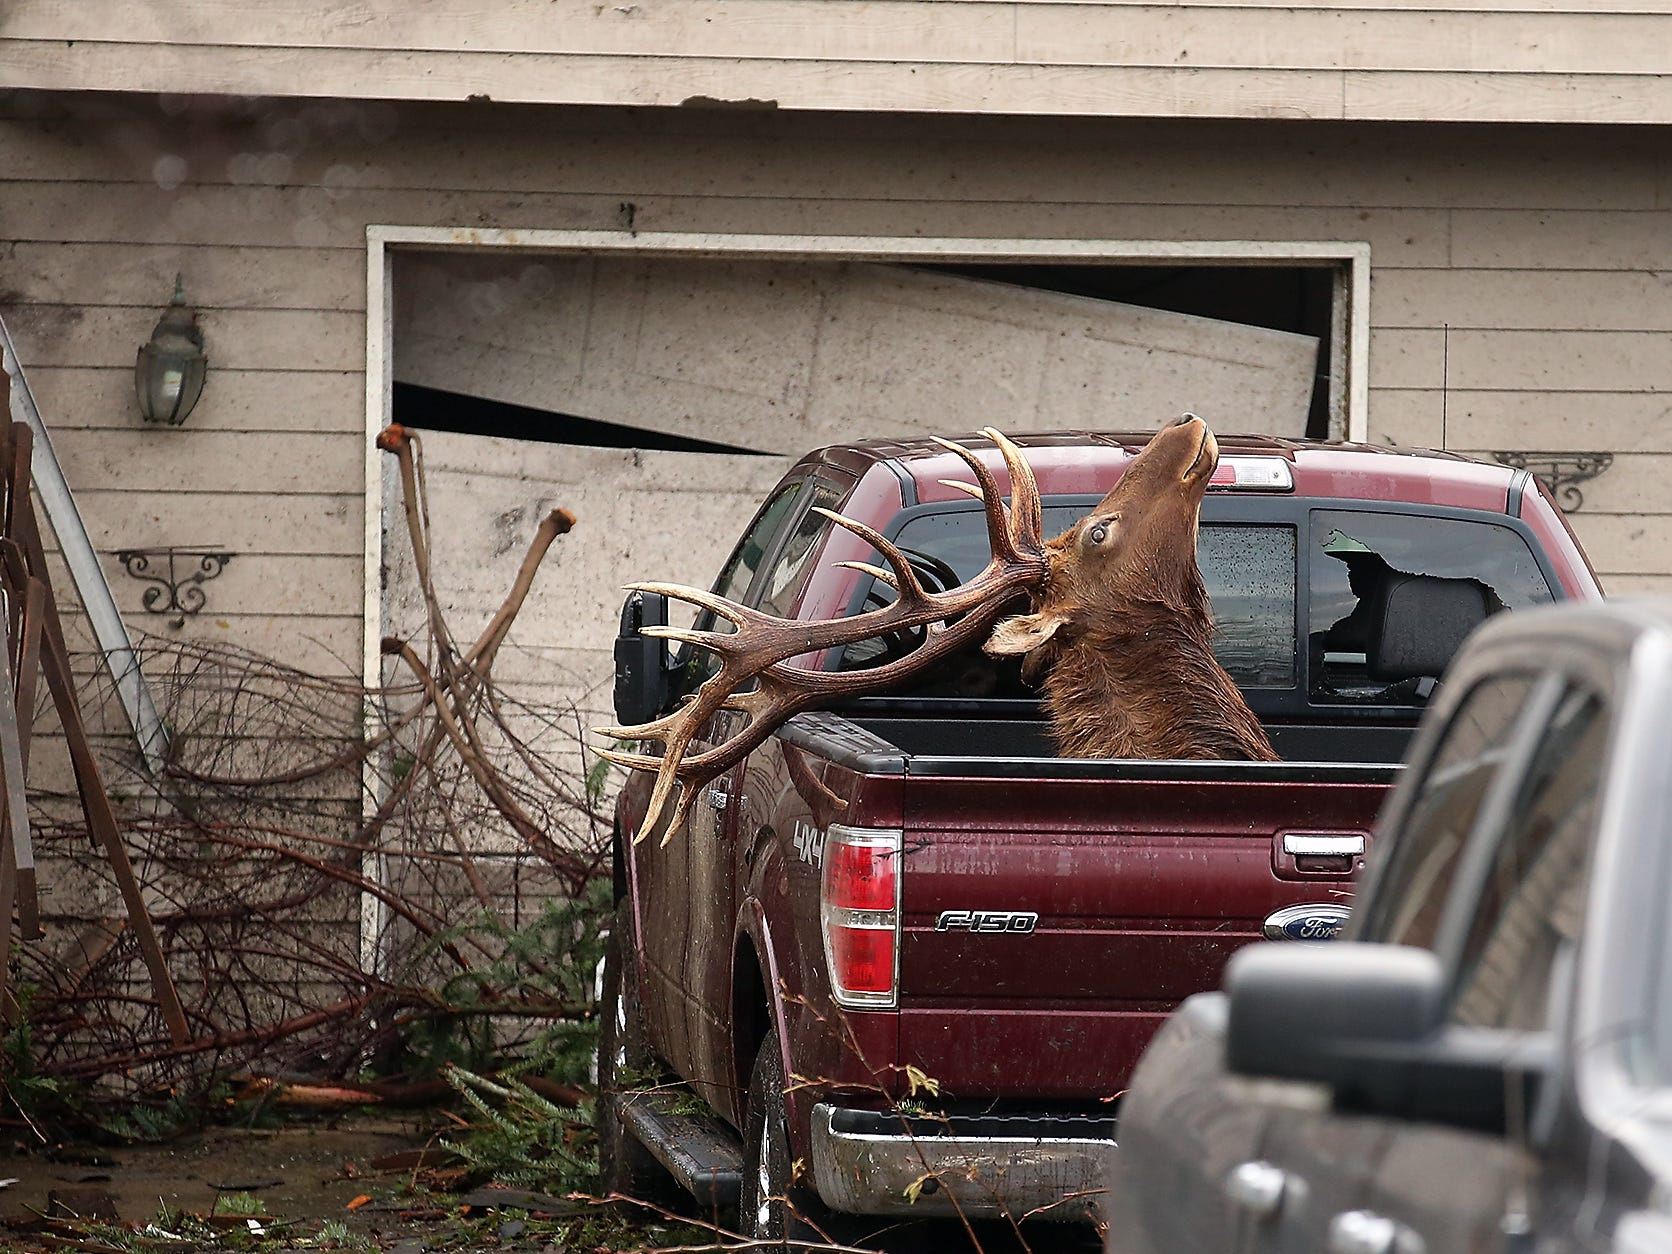 A taxidermy elk with high sentimental value to the Crain family awaits transport in a family vehicle at their home in Port Orchard on Wednesday, December 19, 2018. The elk mount was found in their neighbor's yard.